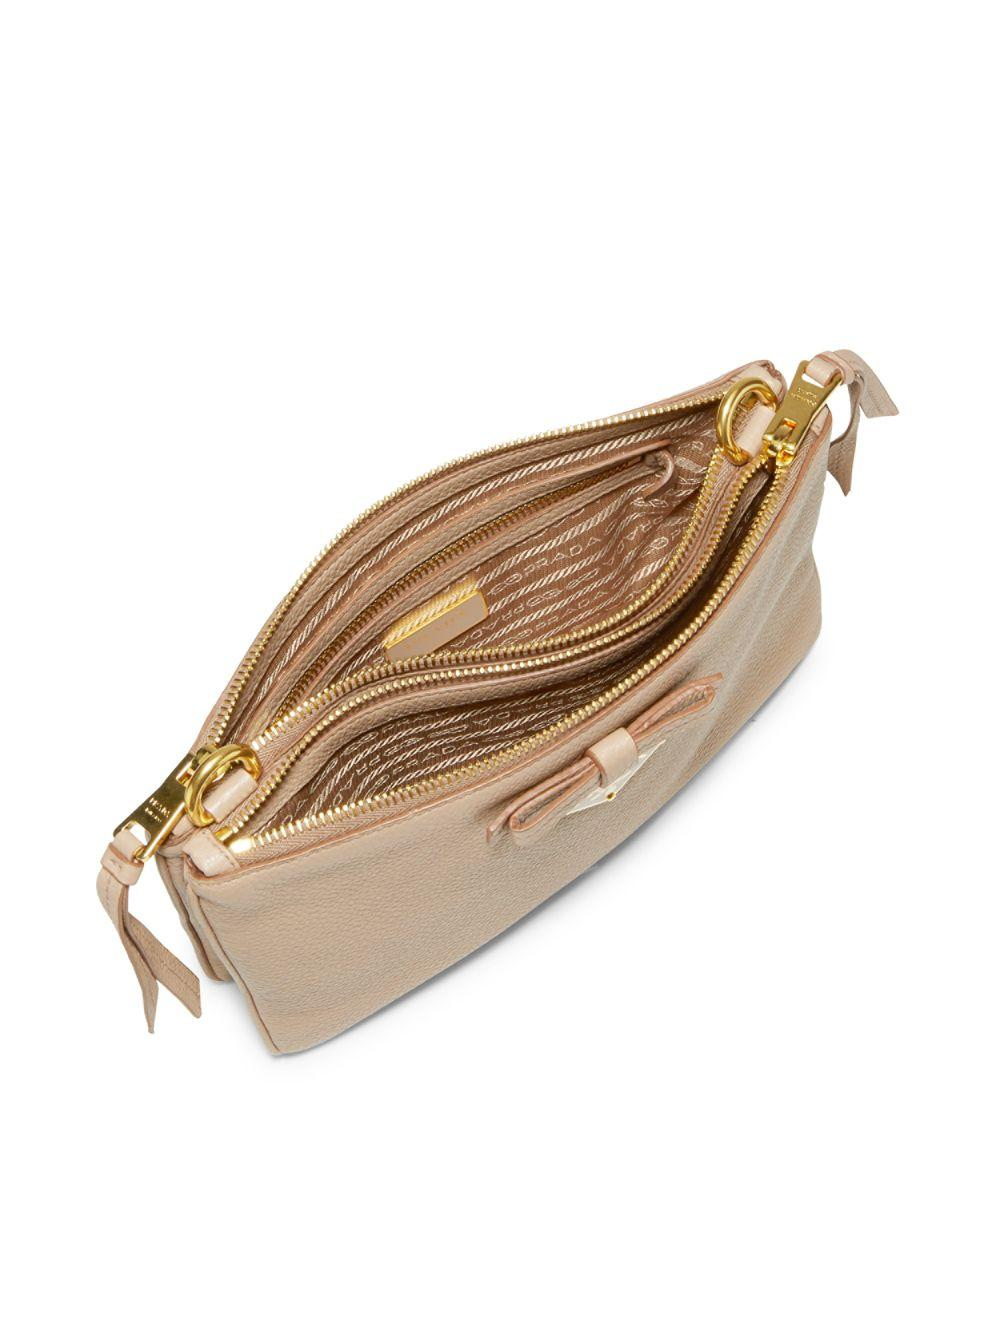 34992180e8ec Prada Bow Leather Crossbody Bag in Natural - Lyst